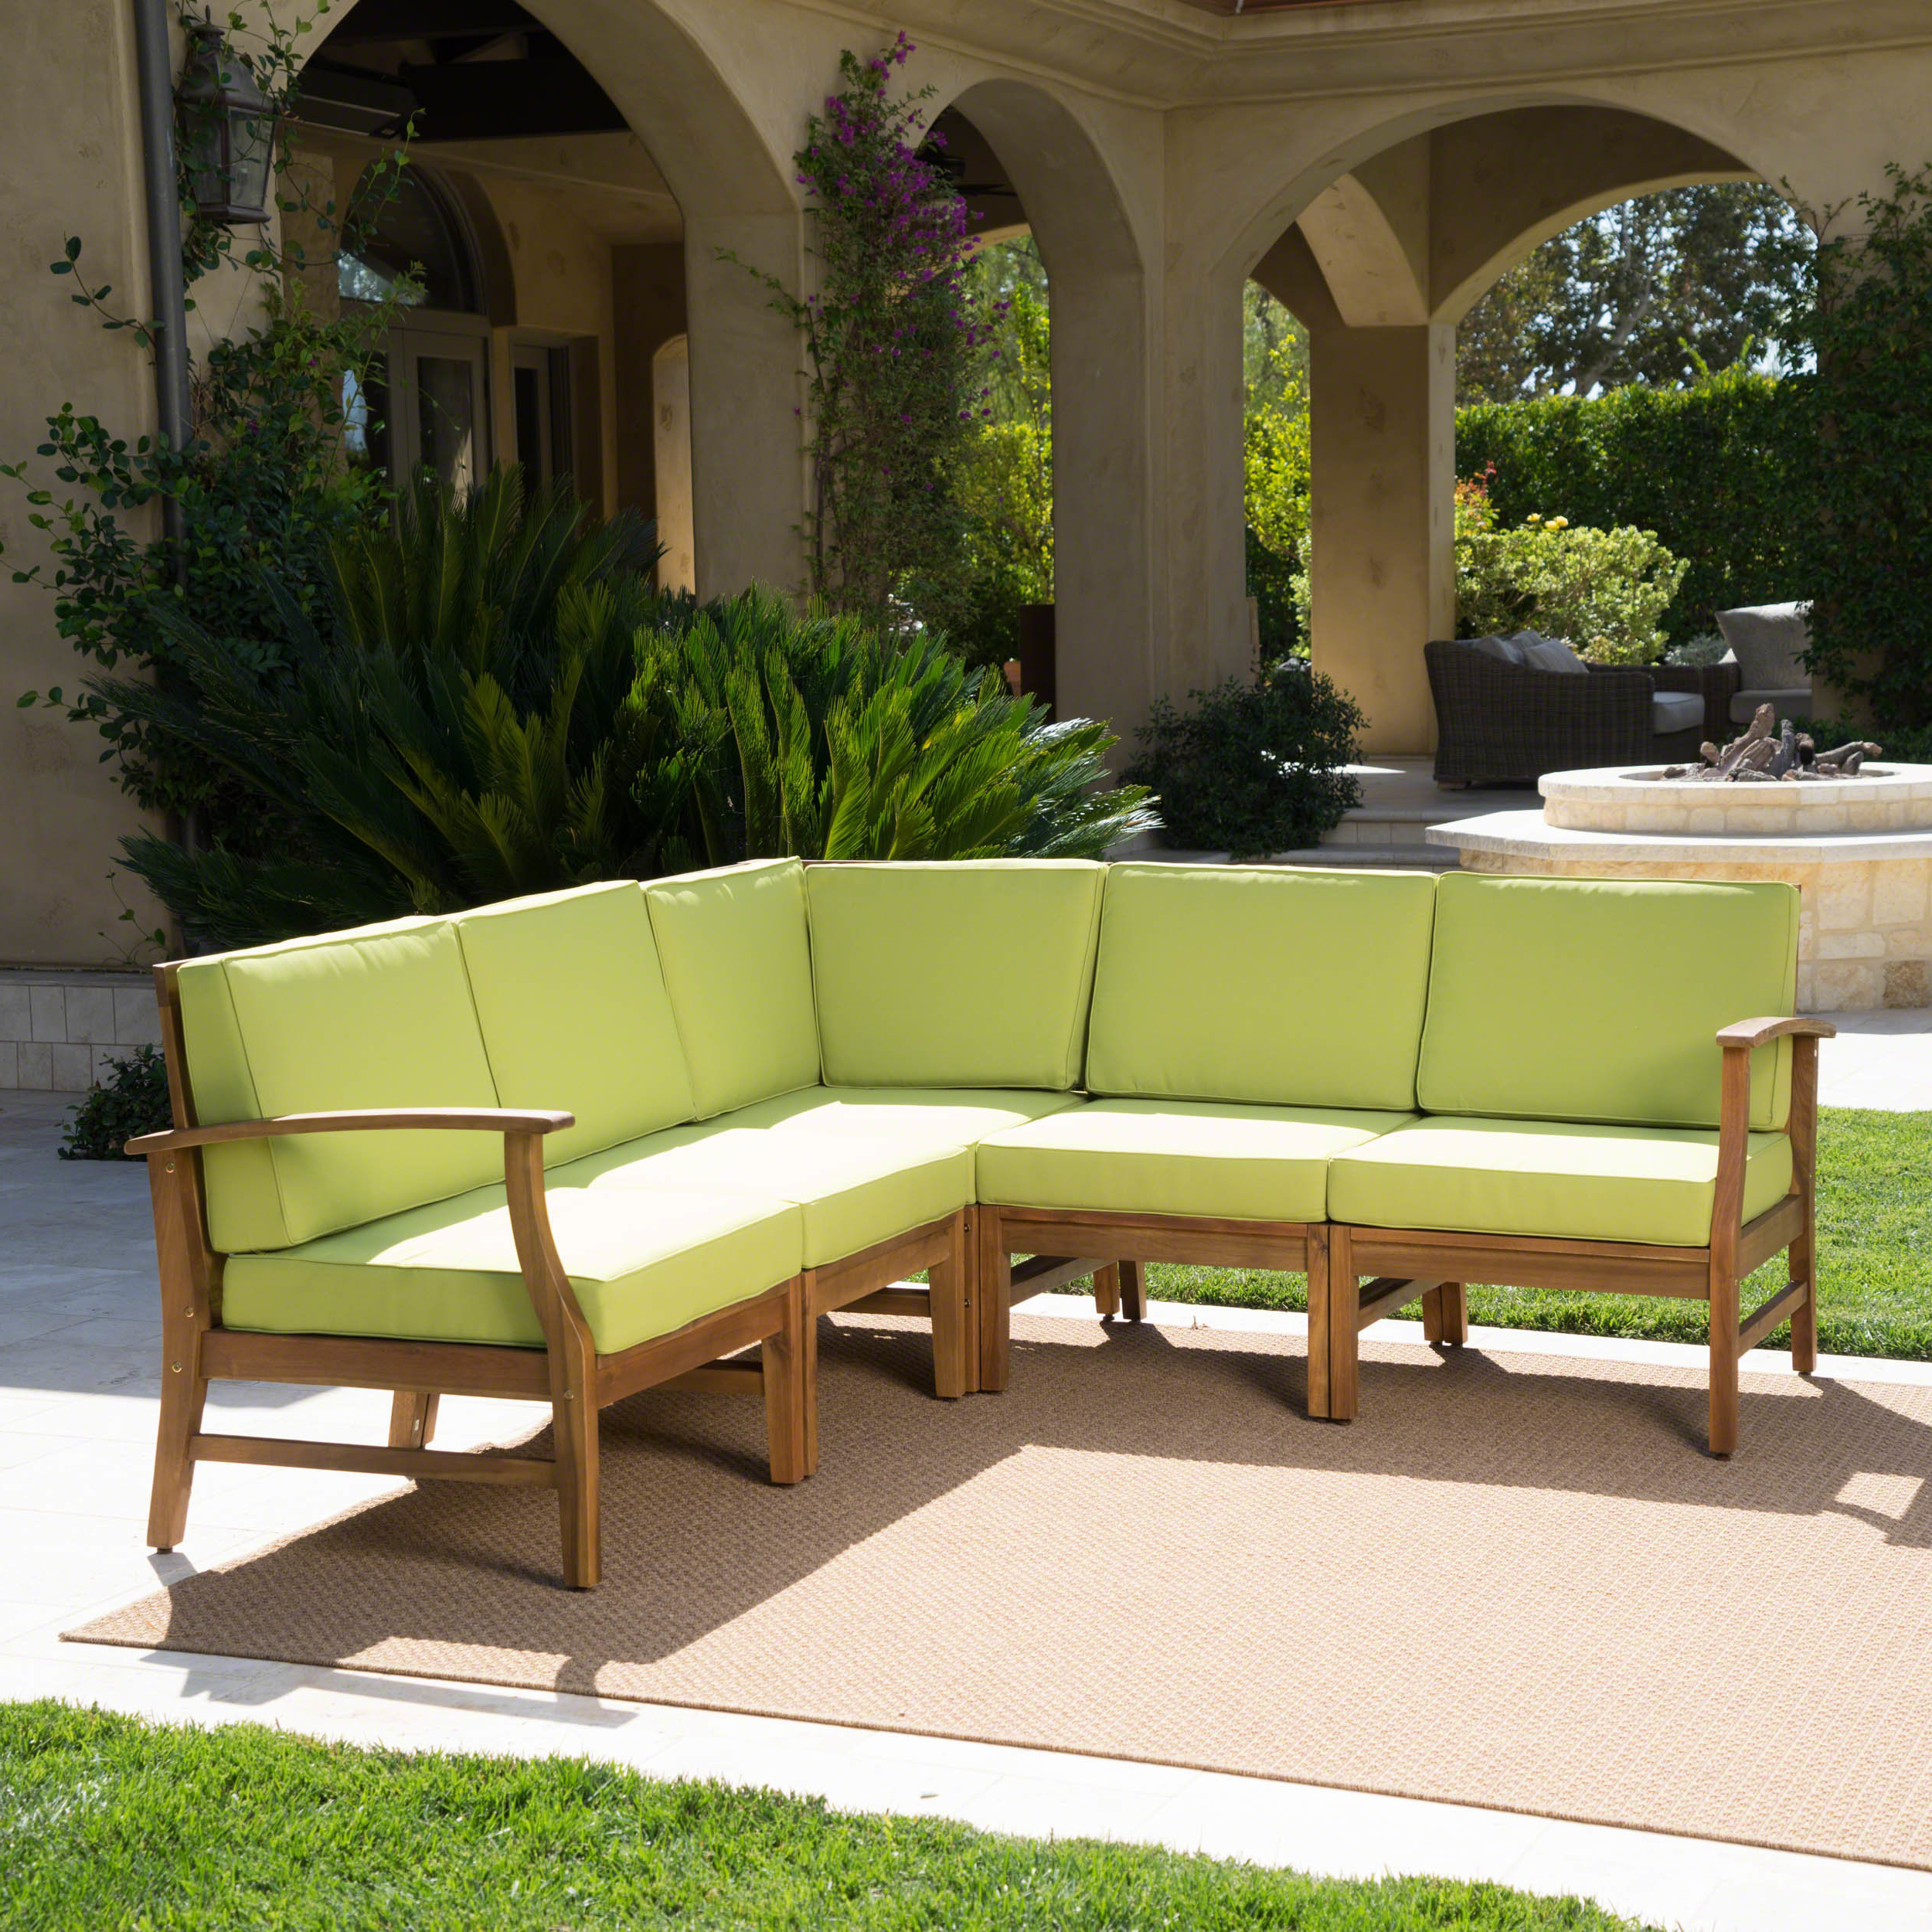 Antonia Teak Patio Sectionals With Cushions Intended For Trendy Antonia Teak Patio Sectional With Cushions (Gallery 3 of 25)